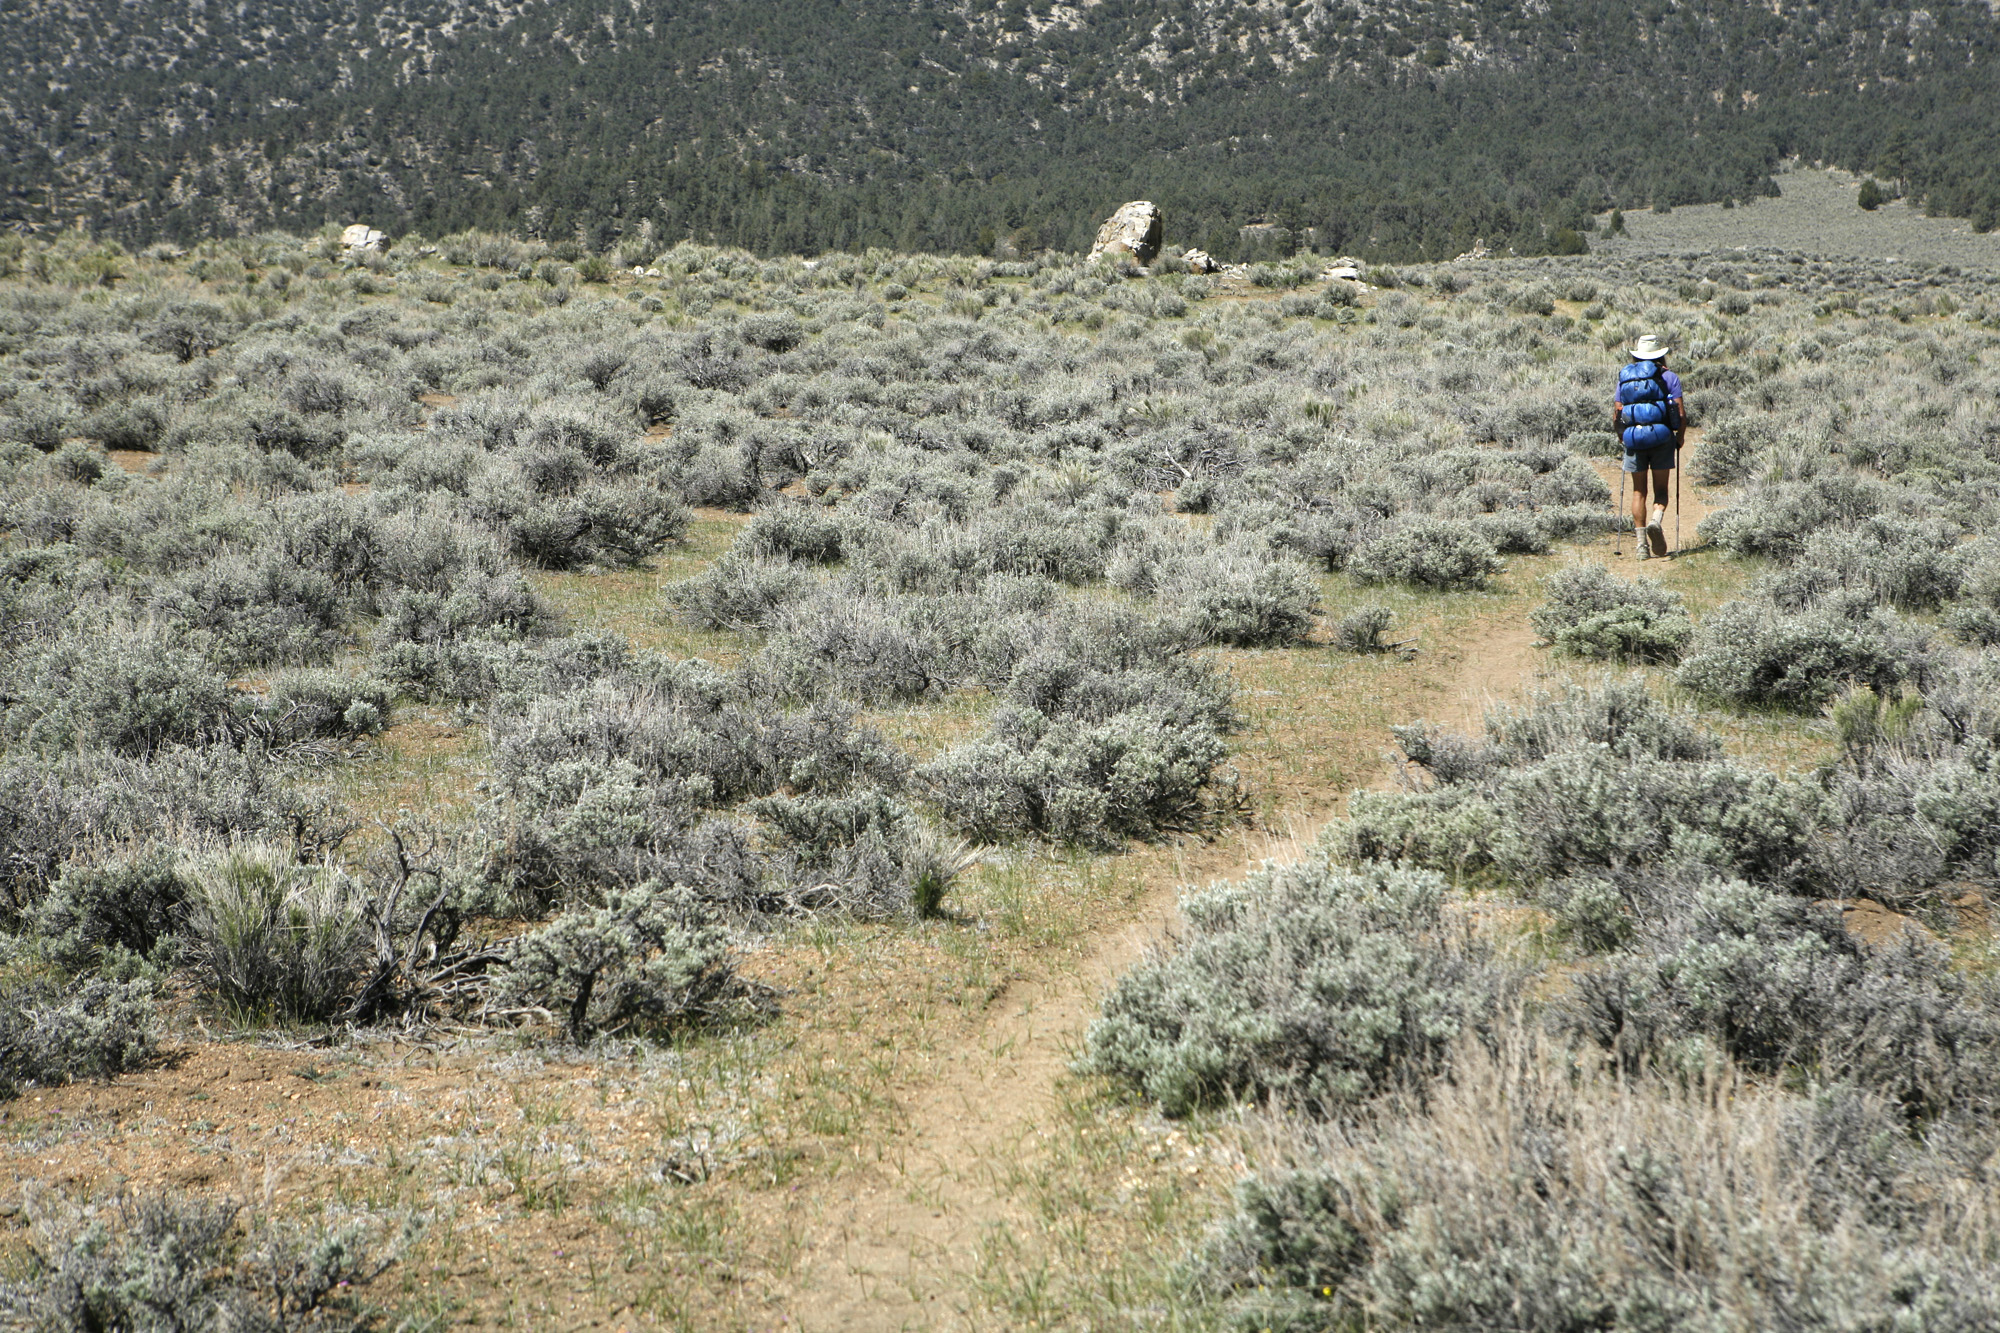 69–year–old George Woodard, a legend on the Pacific Crest Trail, hikes along the famed cross countr